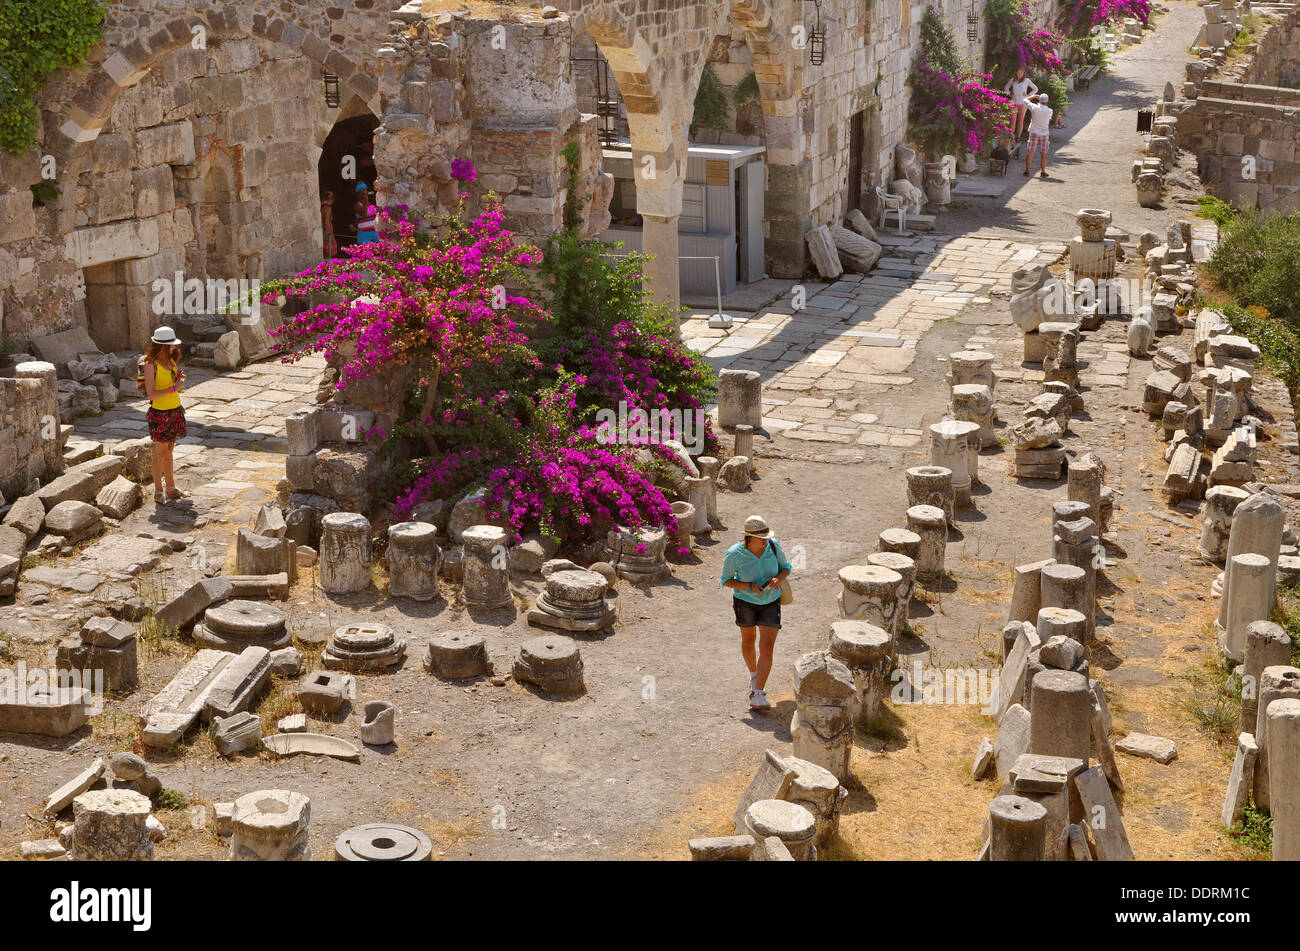 Interior of the Kos City Fortress, Kos Island, Dodecanese Island group, Greece. - Stock Image